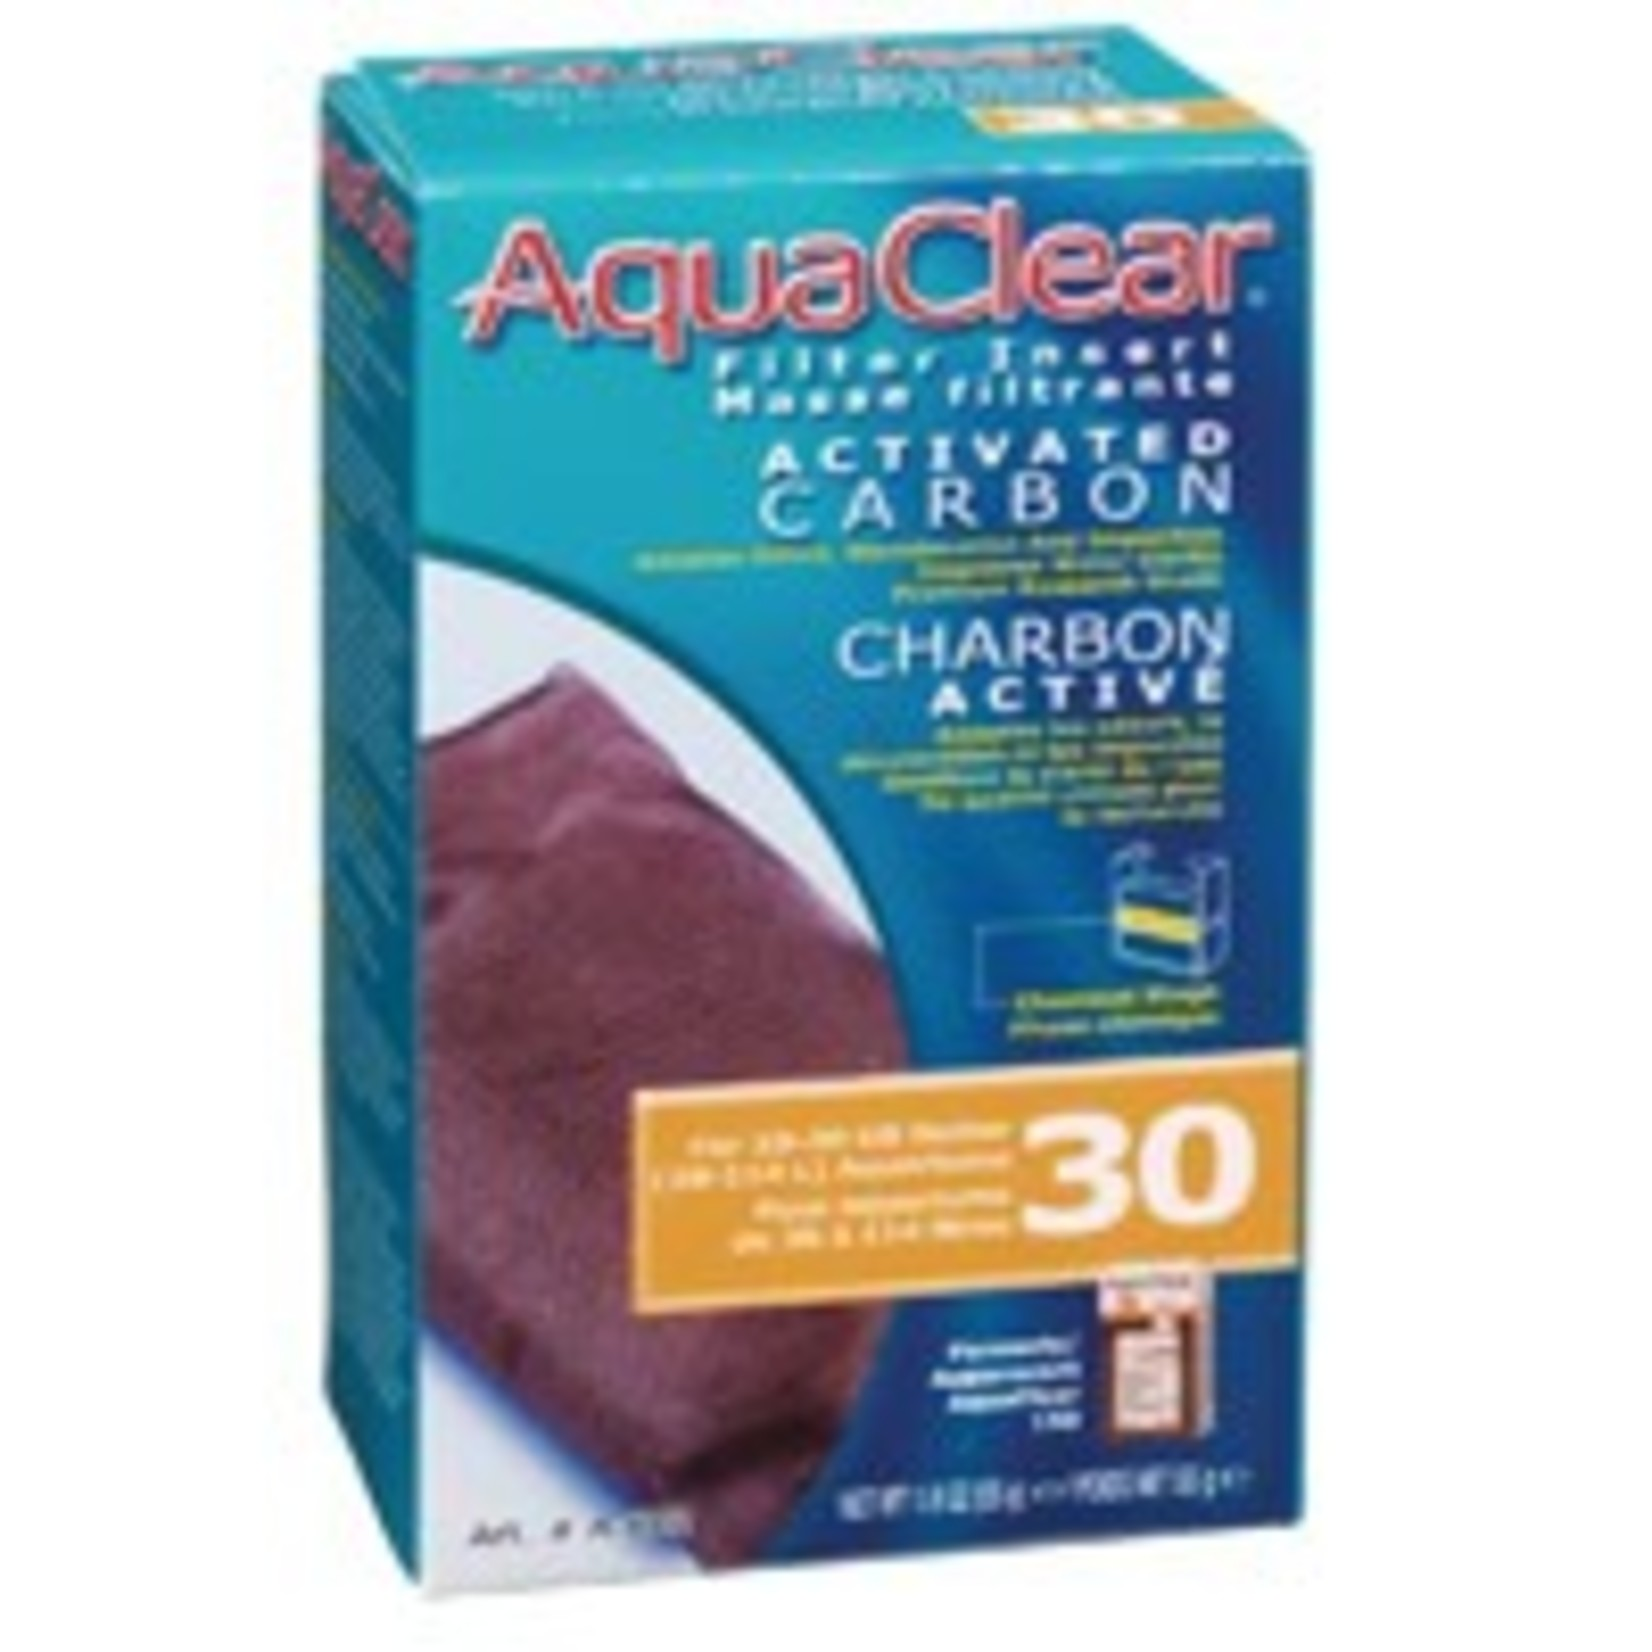 AquaClear 30 Activated Carbon Filter Insert , 55 g (1.9 oz)